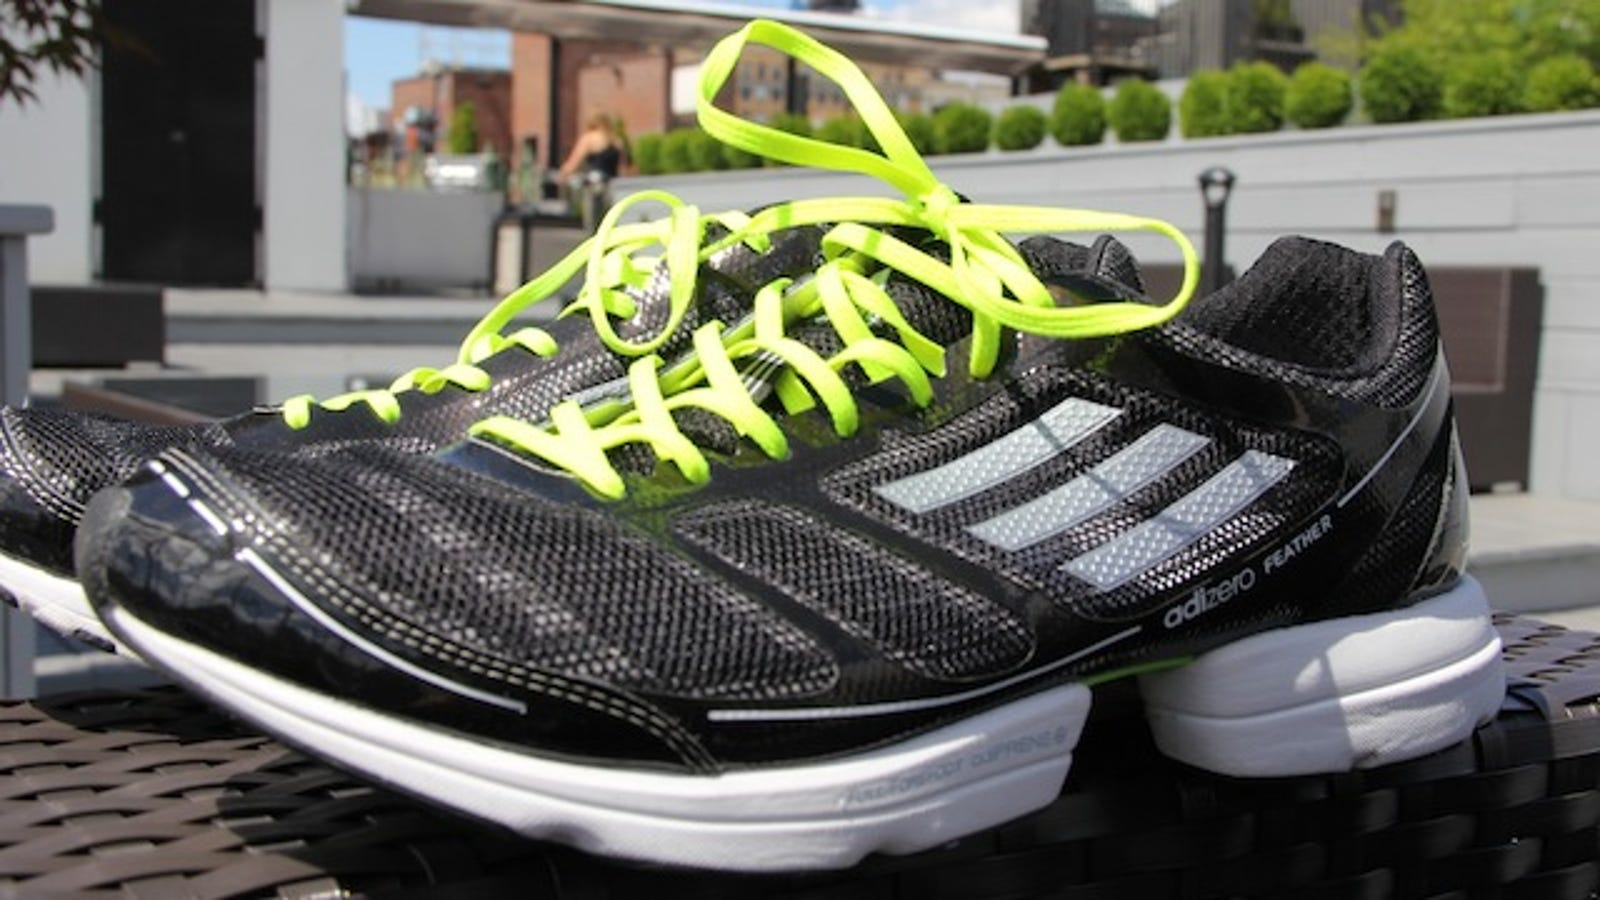 Adidas adiZero Feather Running Shoes Lightning Review  Like Wearing Clouds  on Your Feet 181f1896297